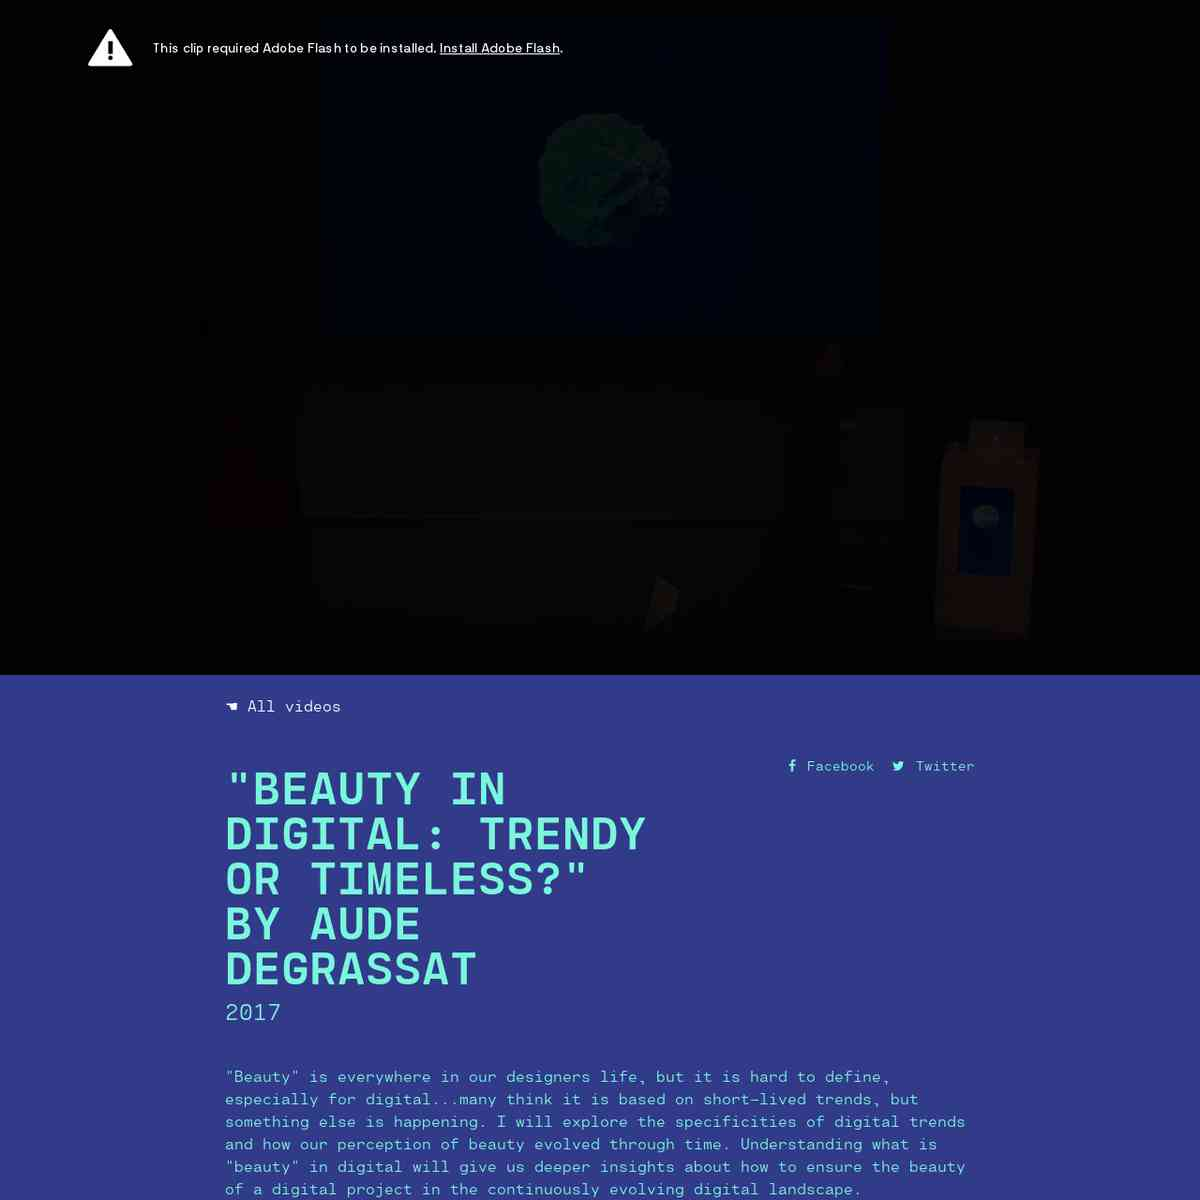 videos.onedayout.io/beauty-in-digital-trendy-or-timeless-by-aude